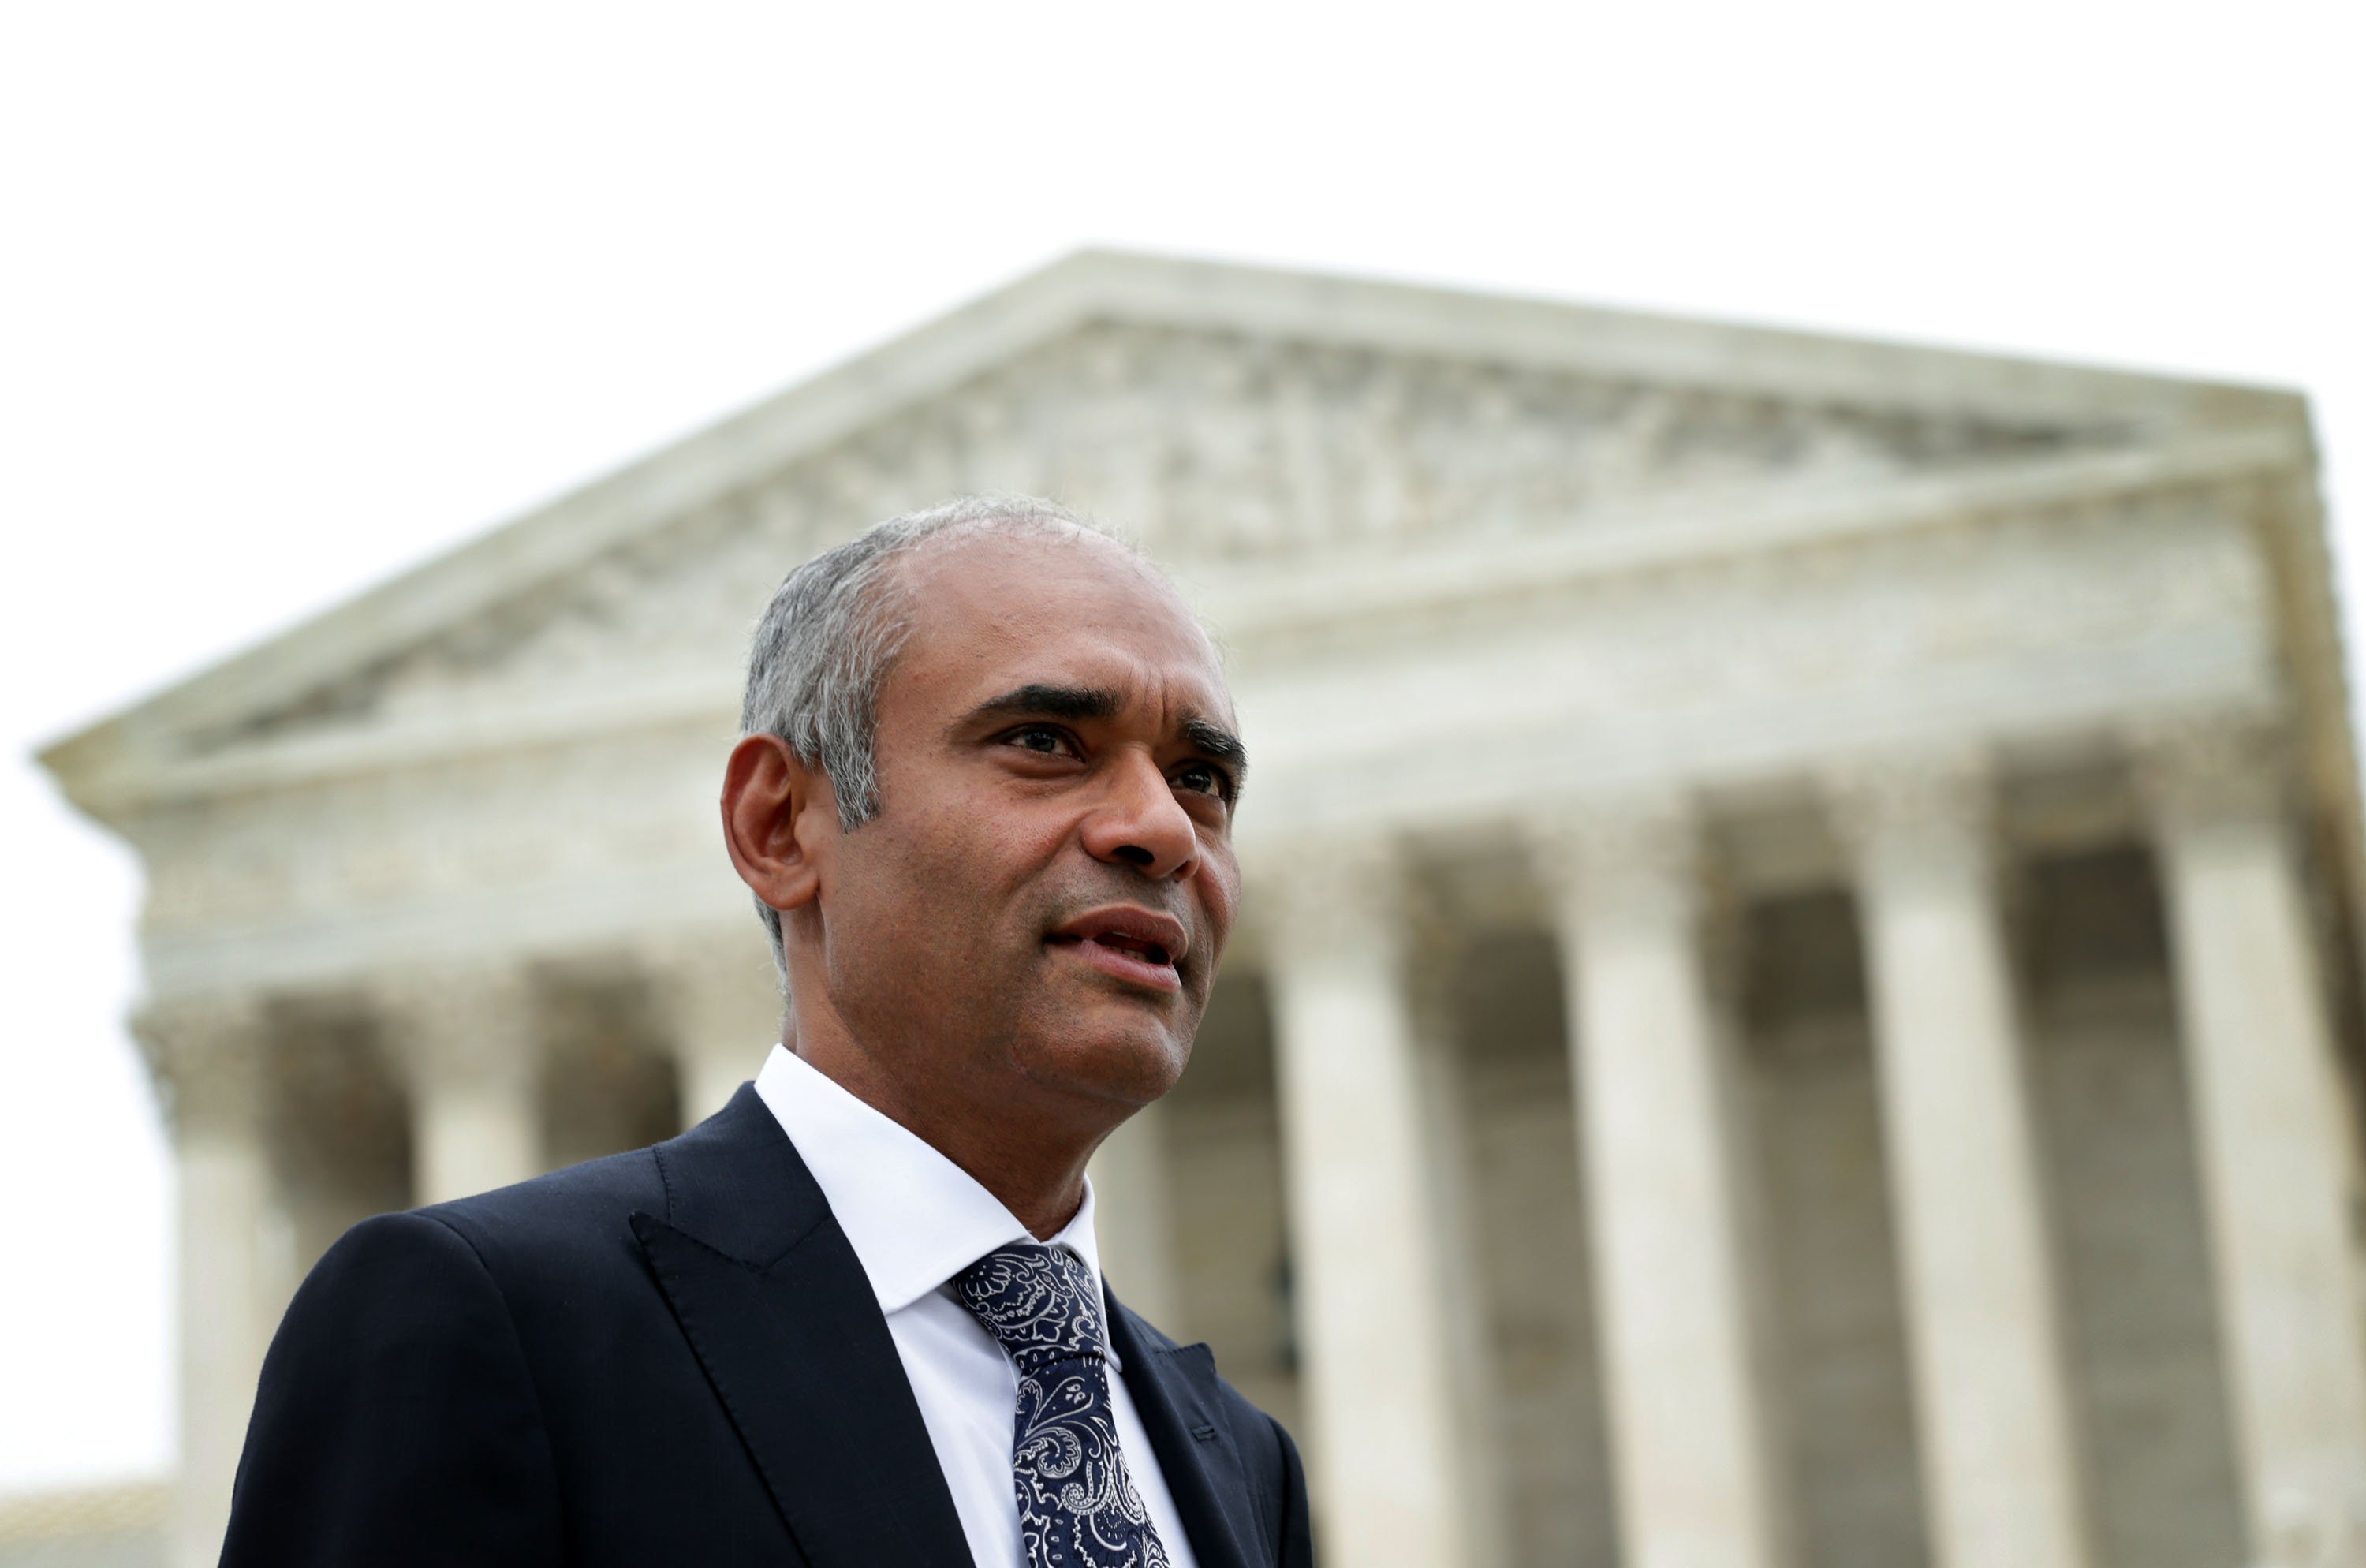 Aereo CEO Chet Kanojia leaves the U.S. Supreme Court after oral arguments on April 22, 2014 in Washington, DC.